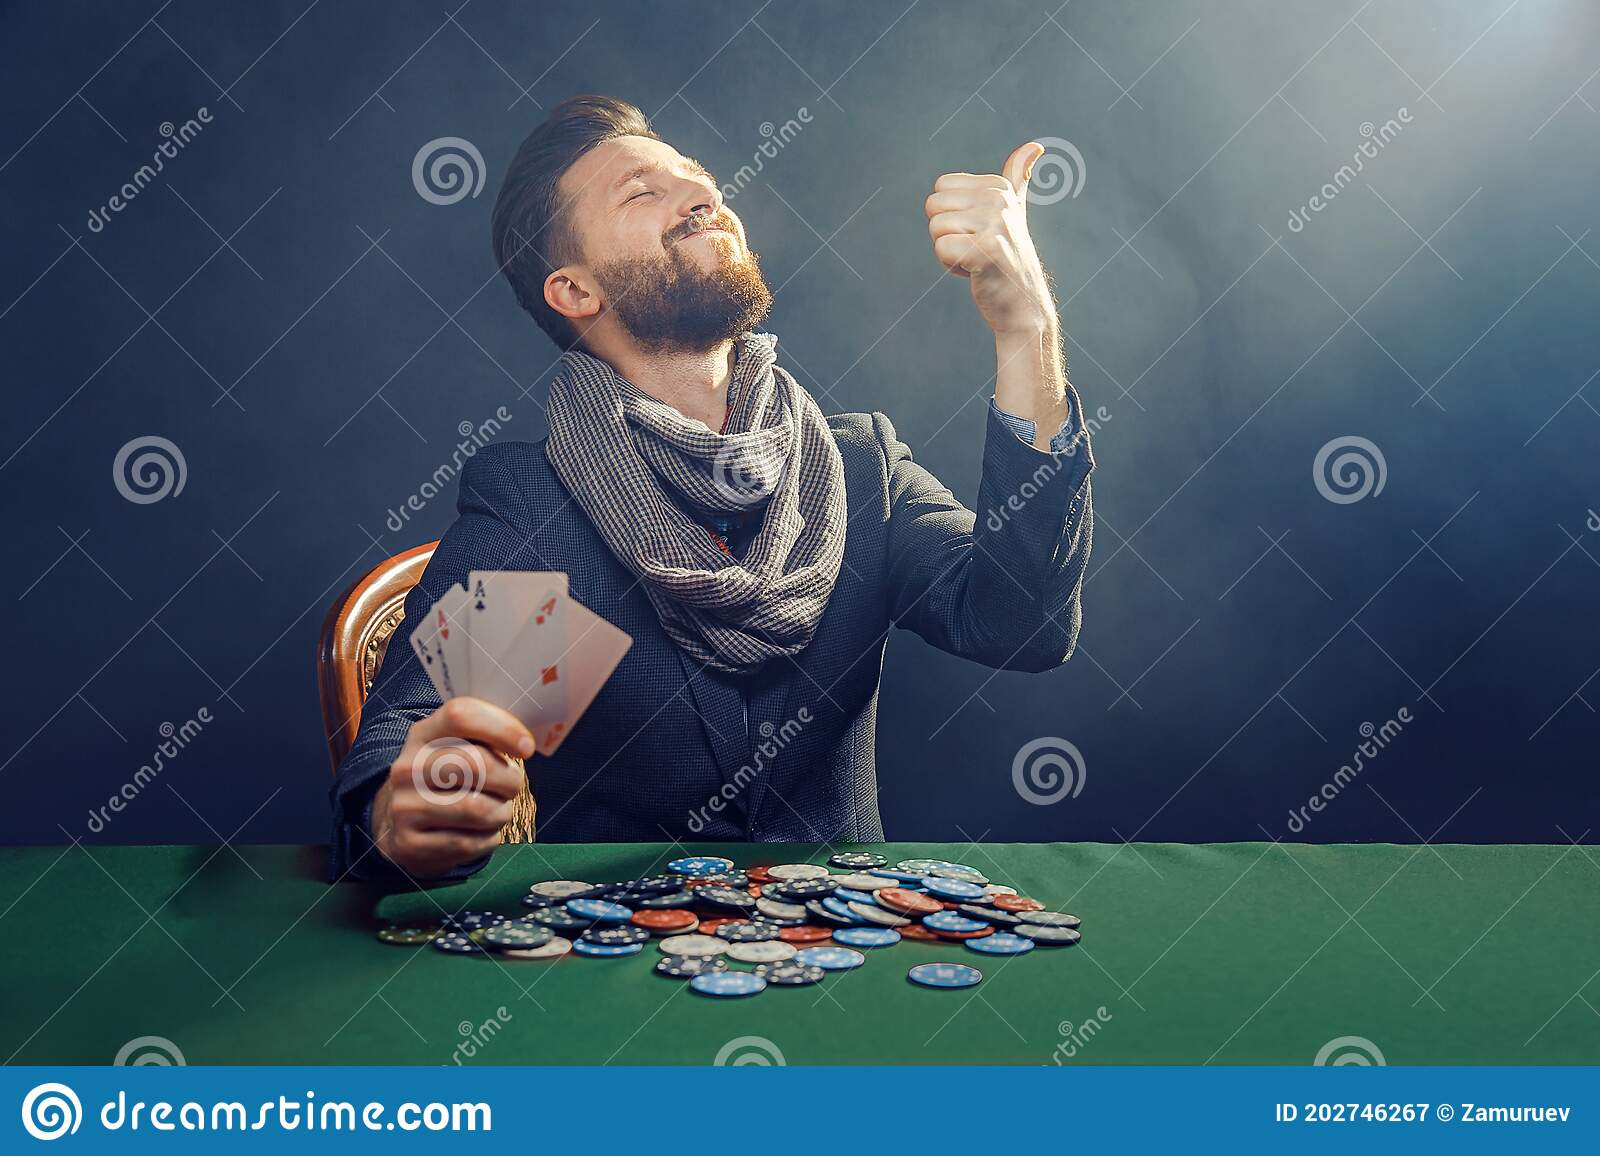 Happy Poker Player Winning And Holding A Pair Of Aces Stock Image Image Of Hearts Game 202746267